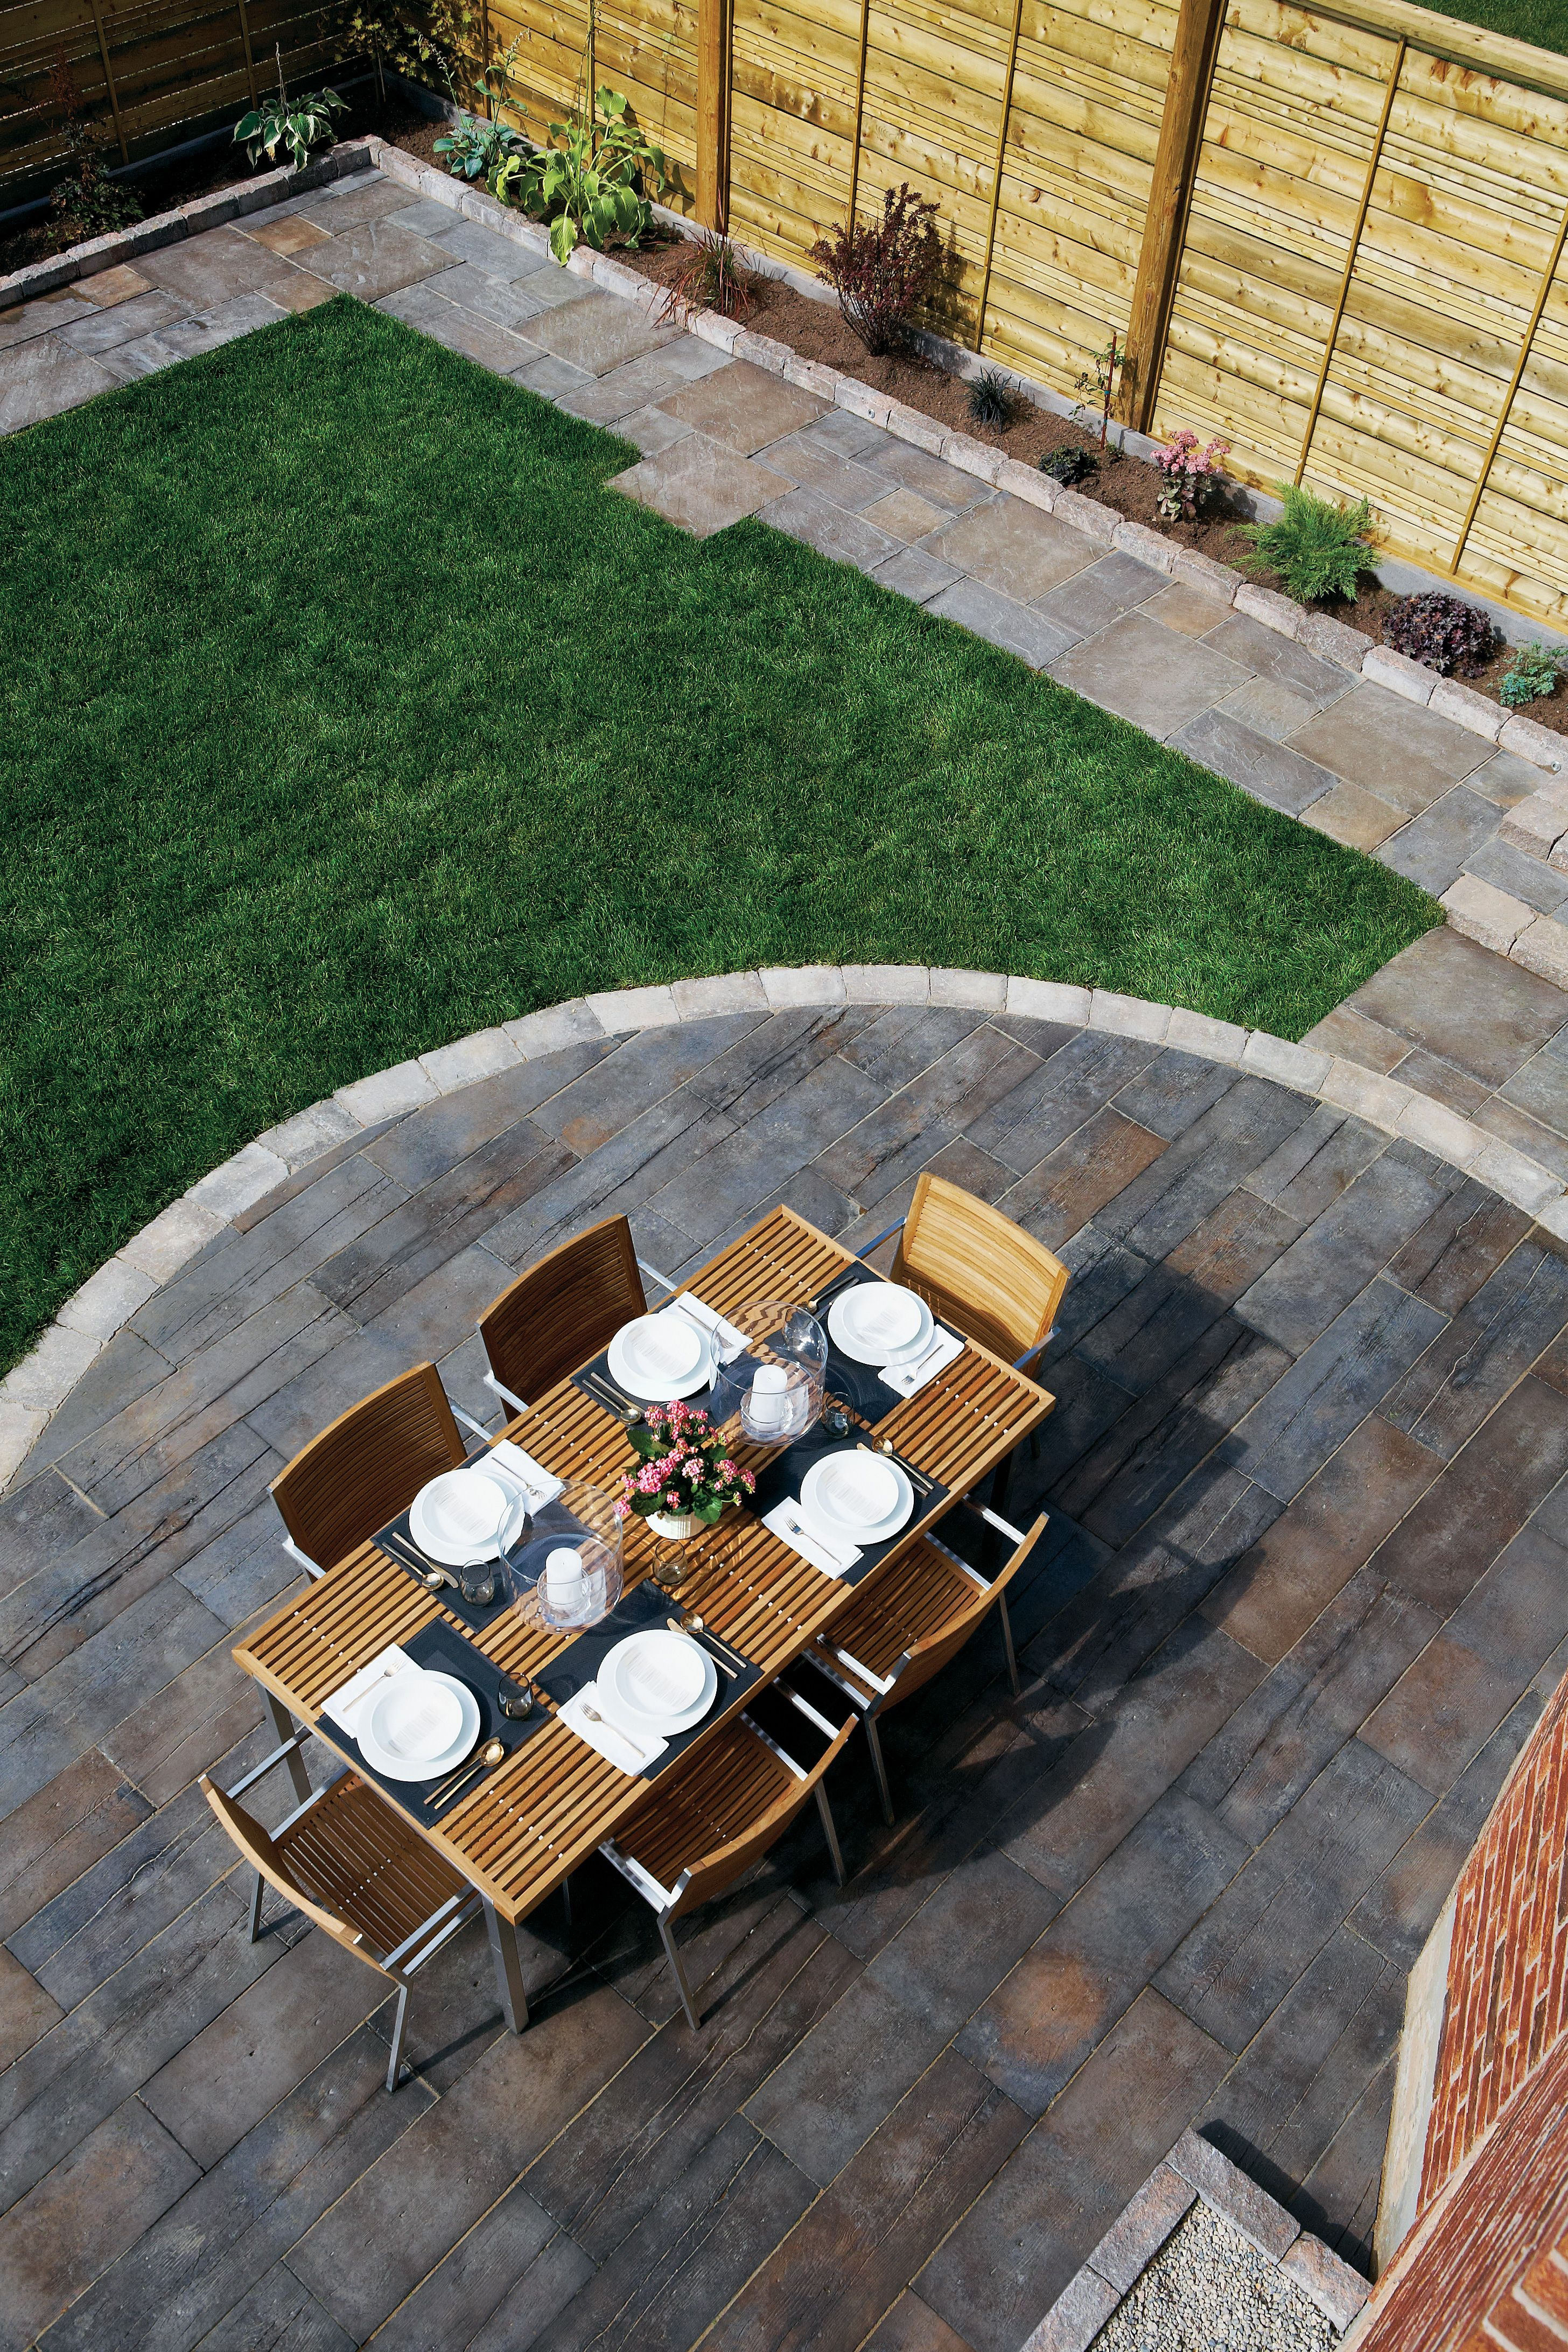 Small Patio Decorating Ideas by Kelly of View Along the ... |Slab Patio Decorating Ideas